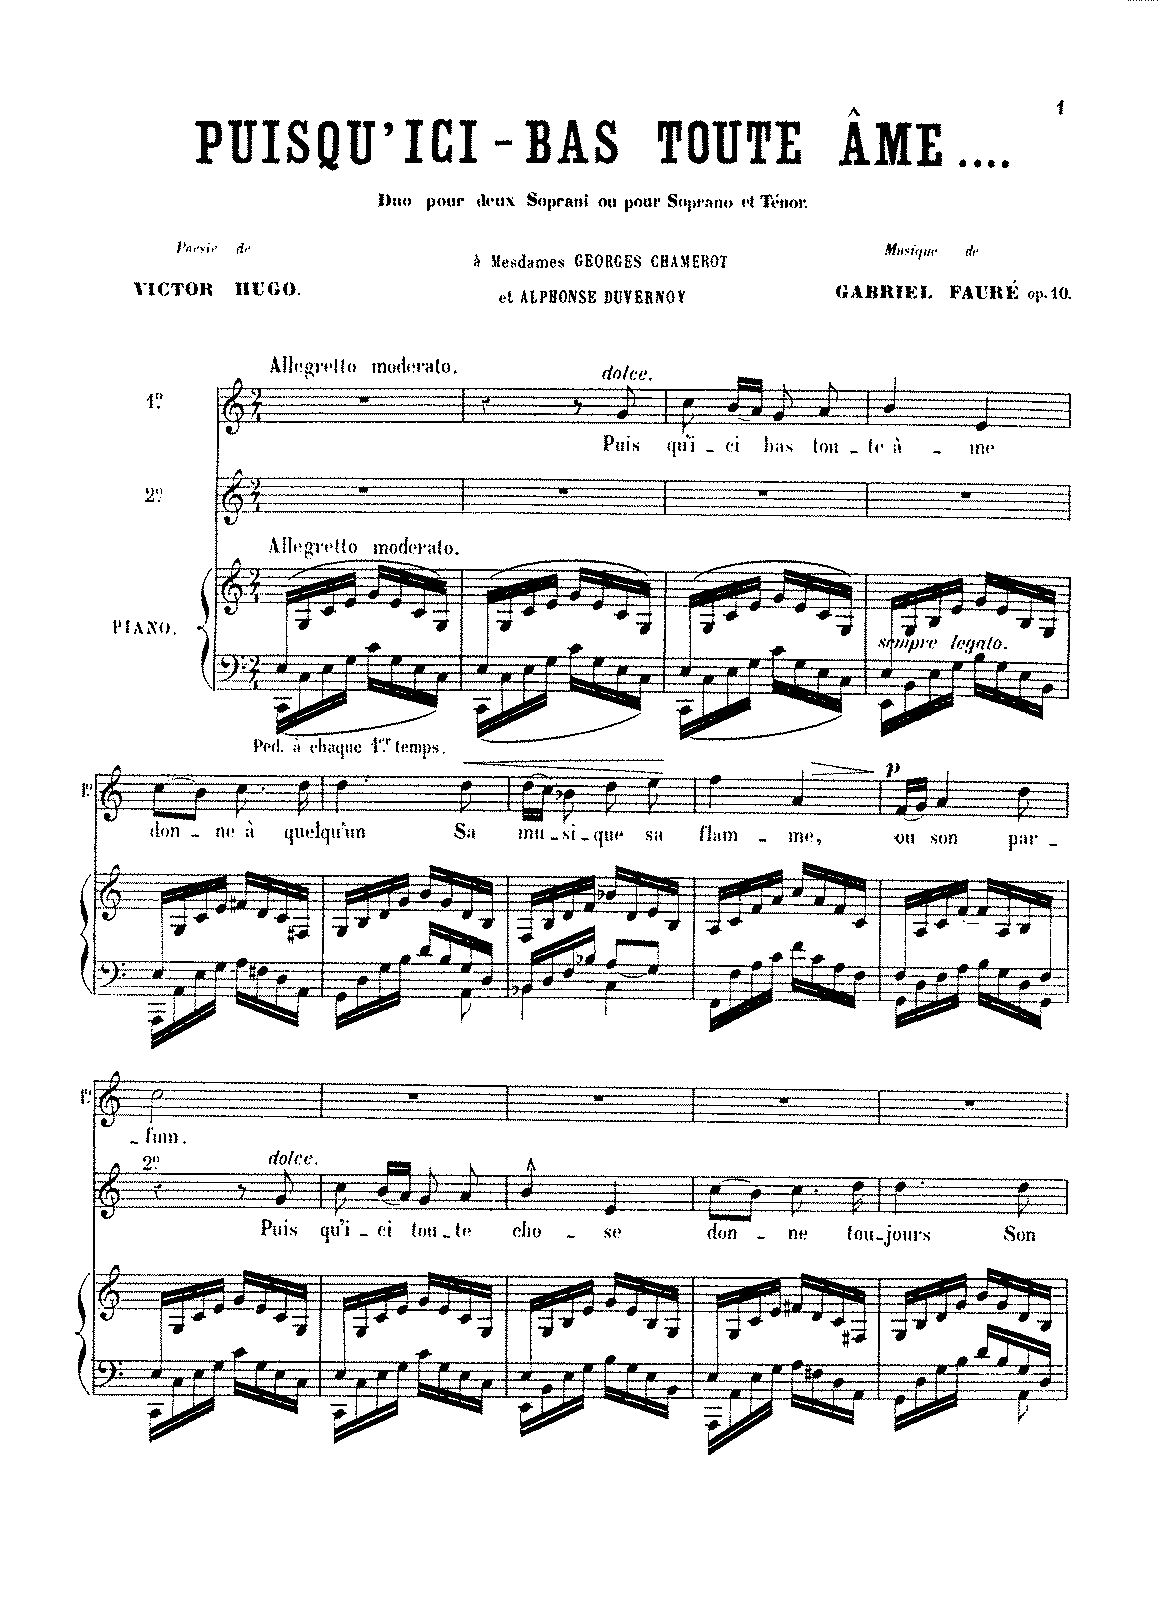 PMLP59246-Fauré - 2 Duets, Op. 10 (2 sopranos and piano).pdf